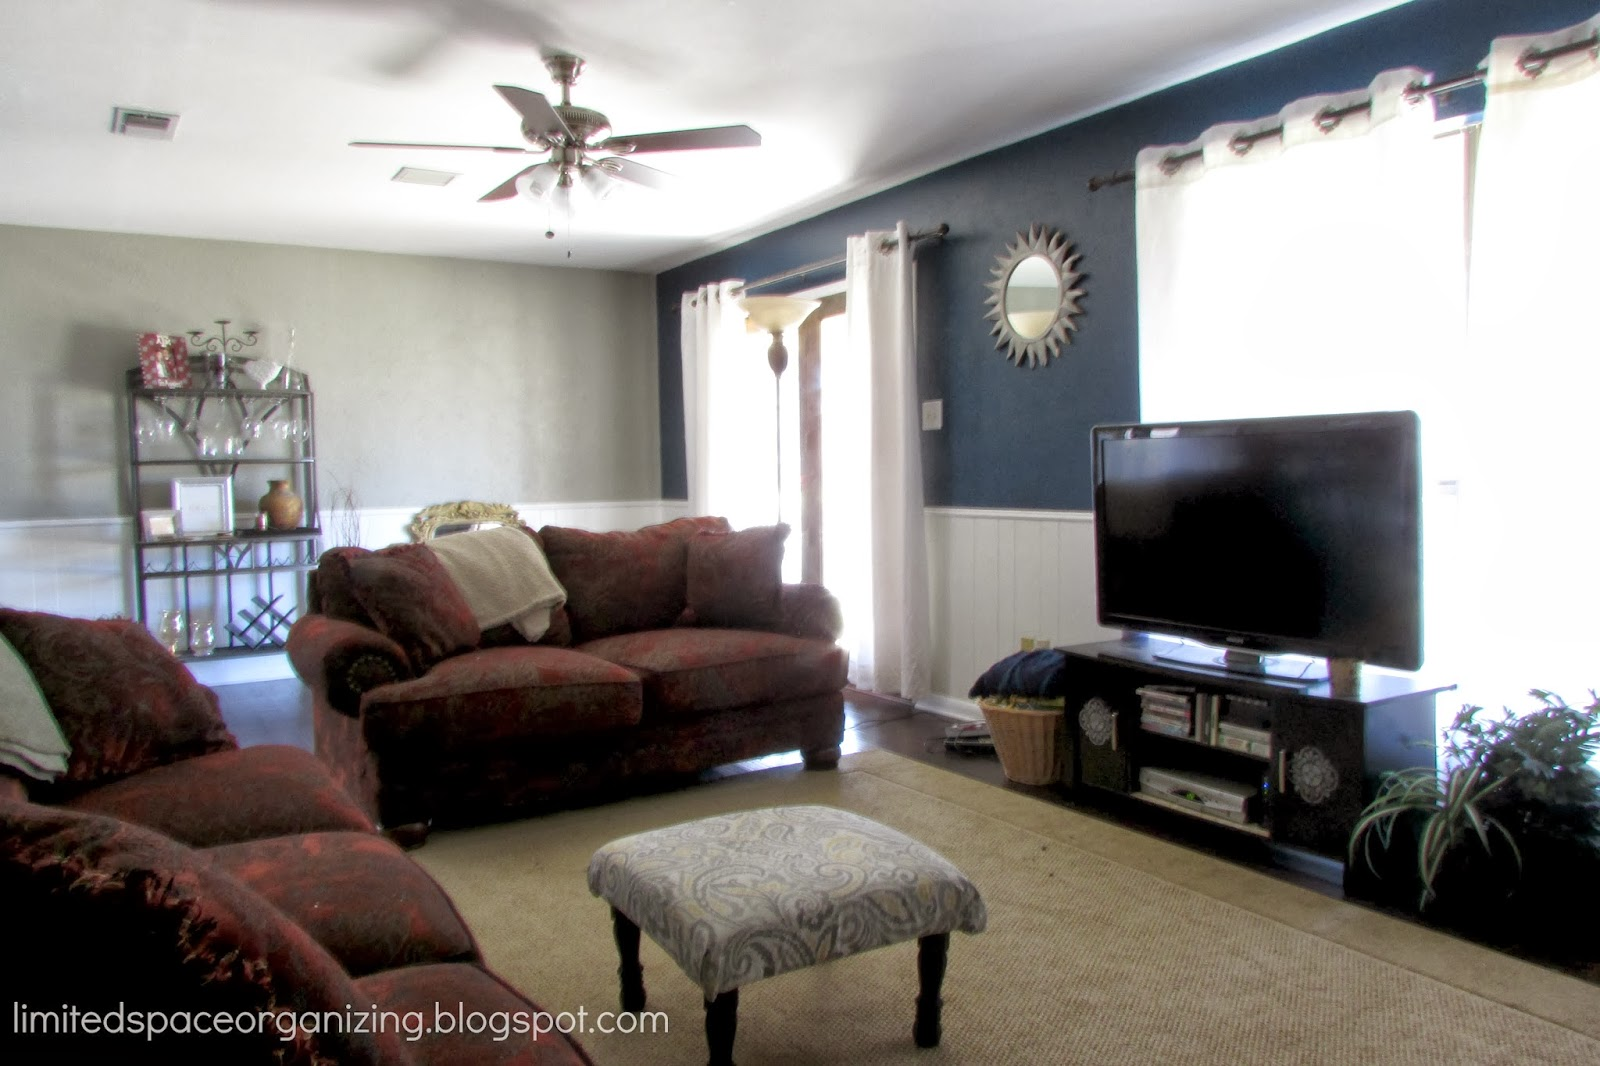 Living room paint ideas accent wall - Limited Space Organizing Living Room Update Navy Blue Accent Wall